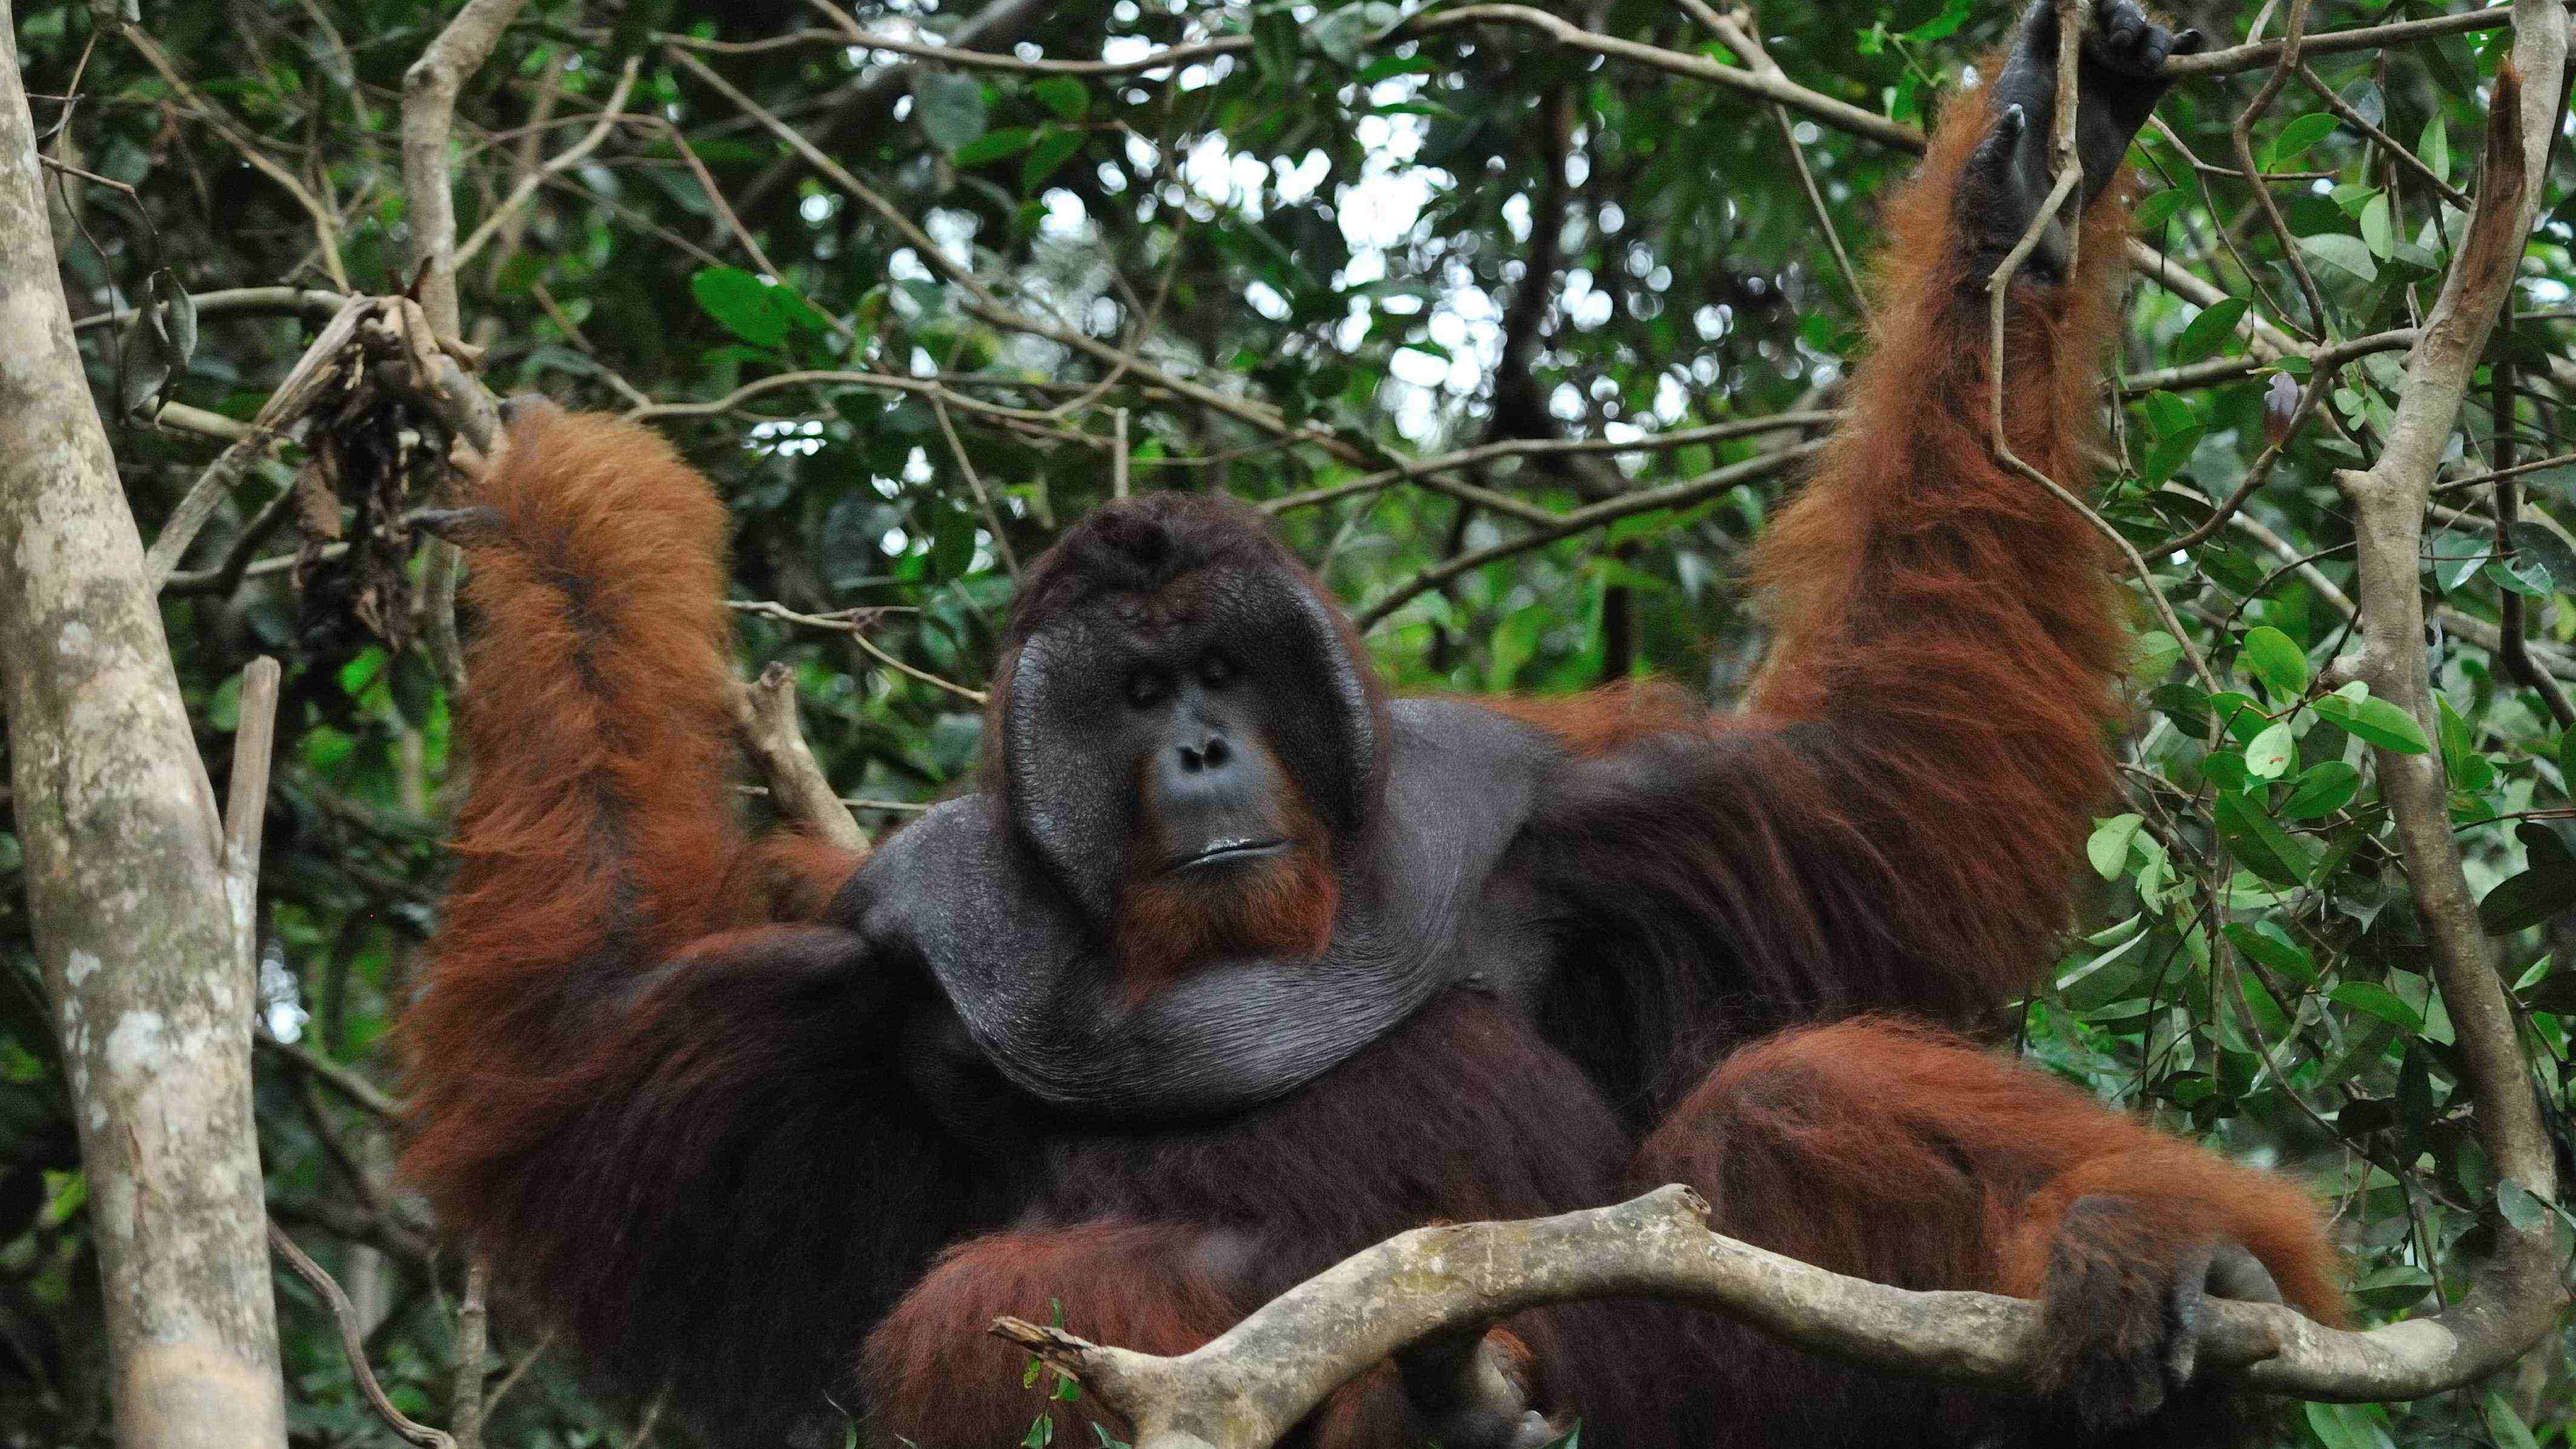 orangutan, camp leakey, tanjung puting, jungle cruise, wildlife safari, tour, hike trek, forest, rain forest, klotok boat, trip, guide, jungle, proboscis monkey, longnose monkey, kalimantan, borneo